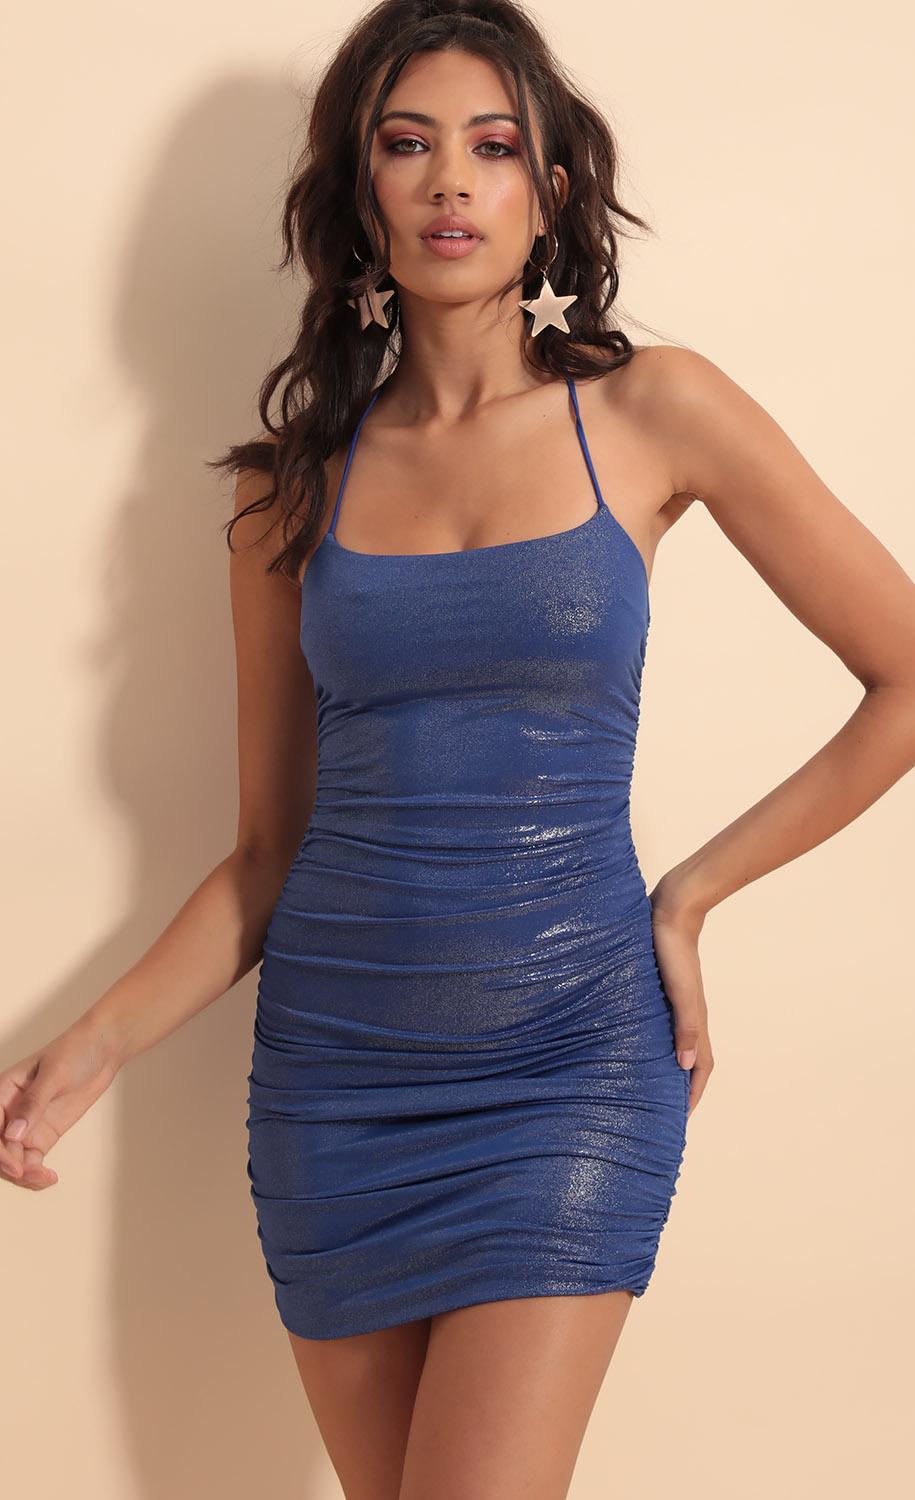 Finest Hour Ruched Dress in Royal Blue Shimmer